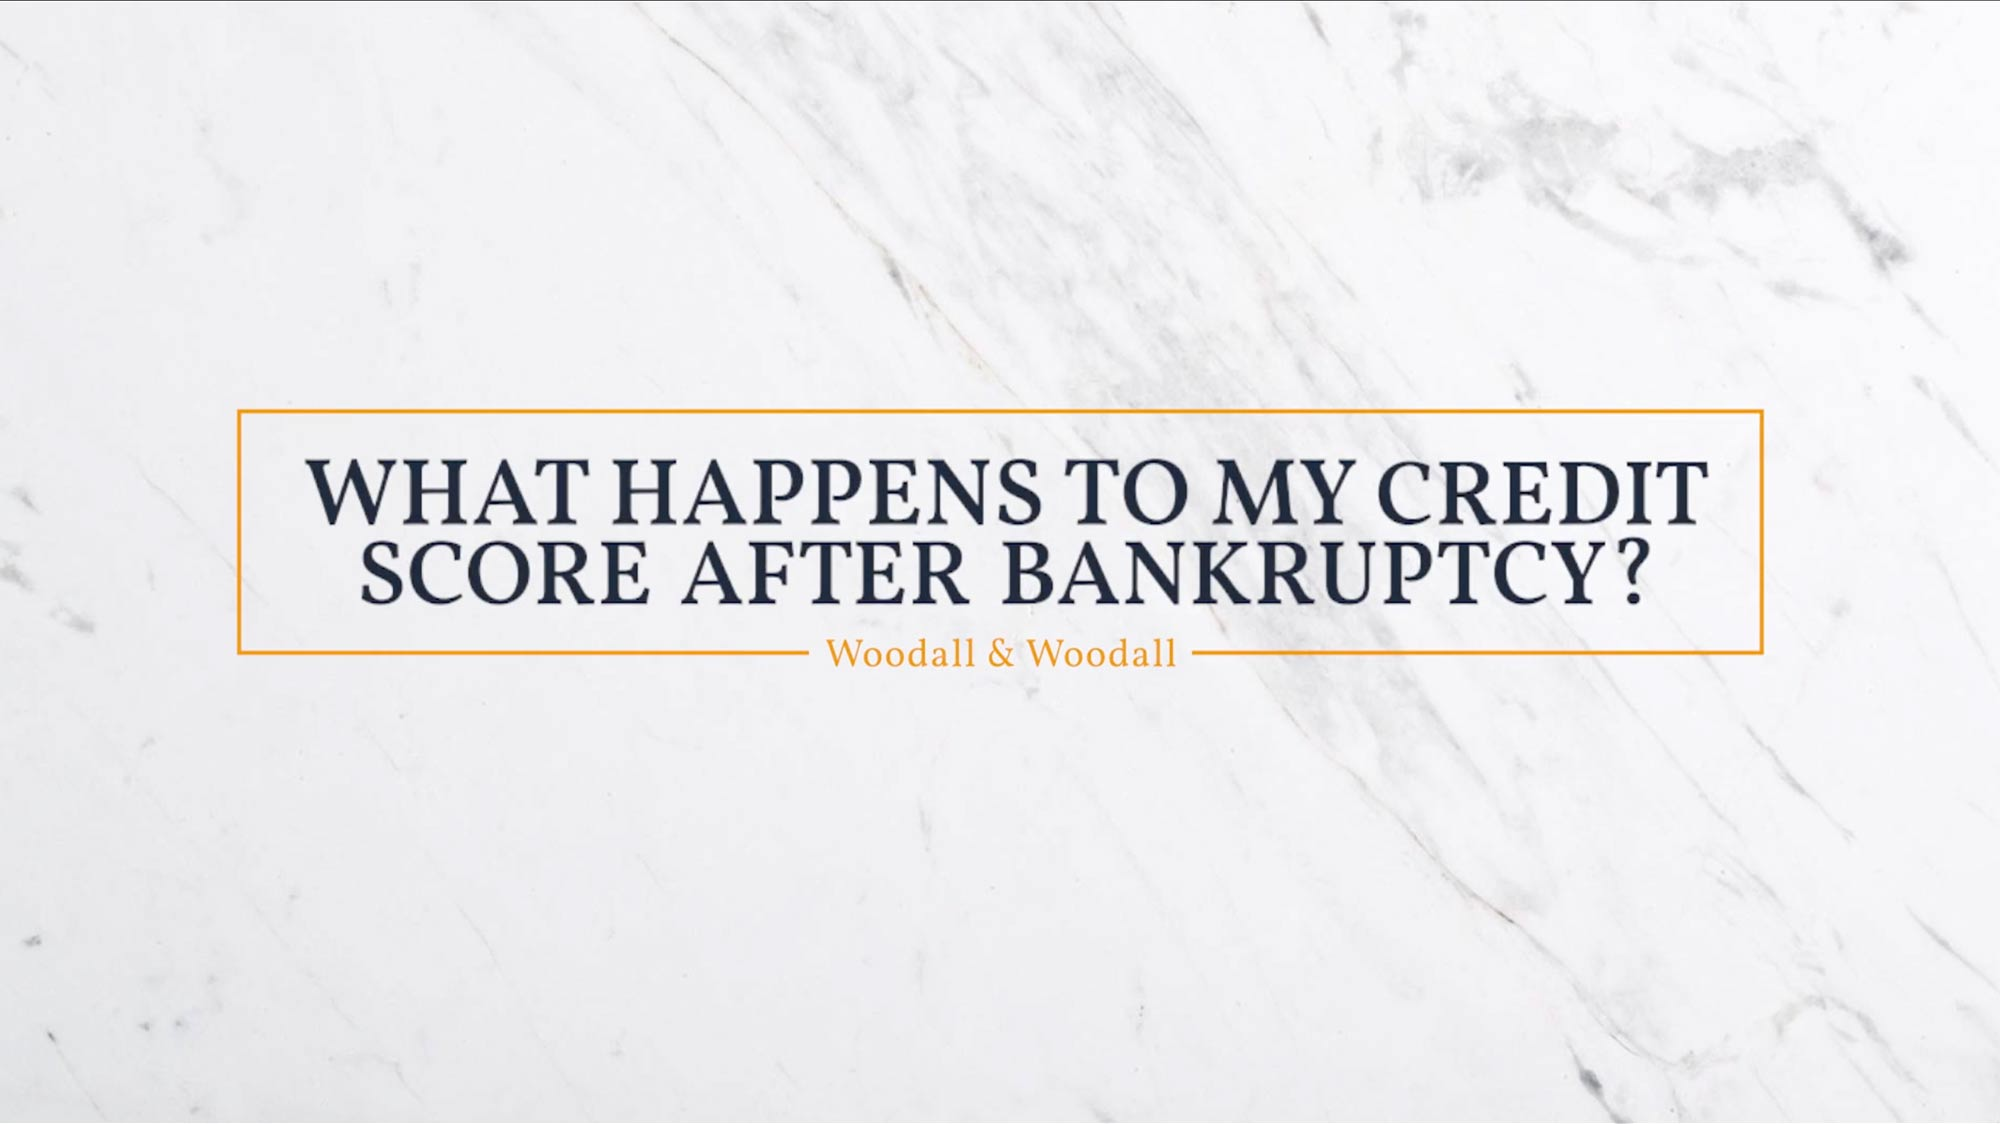 bankruptcy_what happens to credit score.jpg